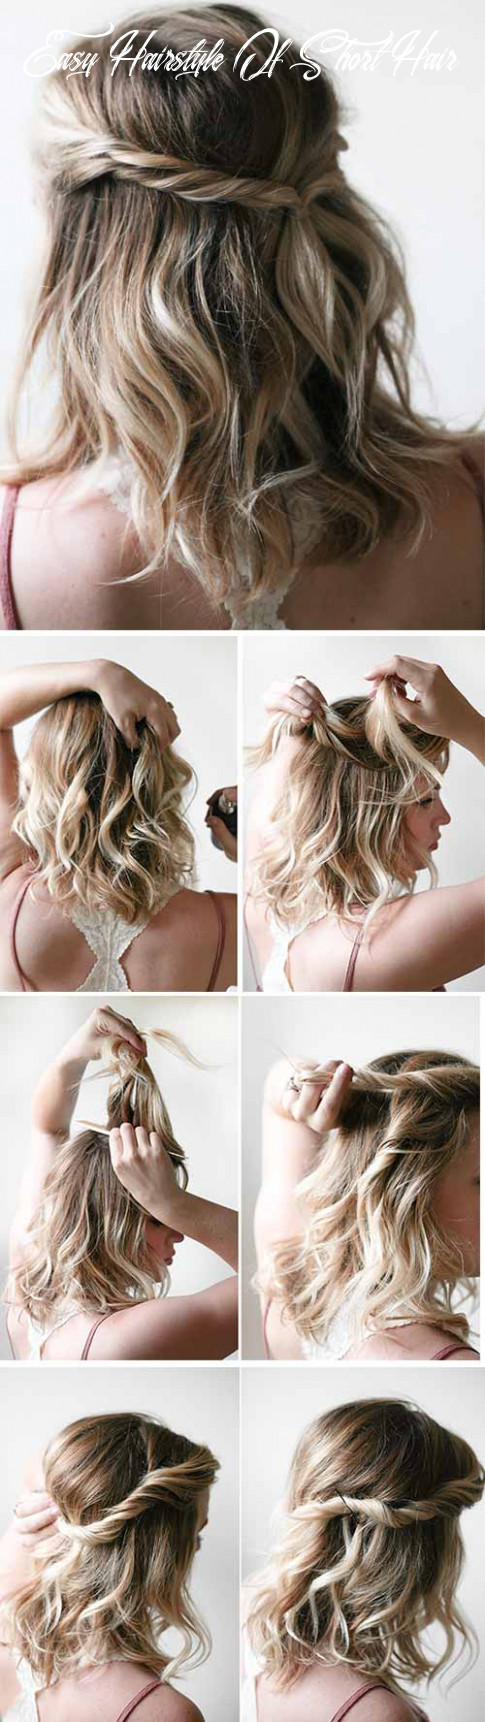 11 incredible diy short hairstyles a step by step guide easy hairstyle of short hair